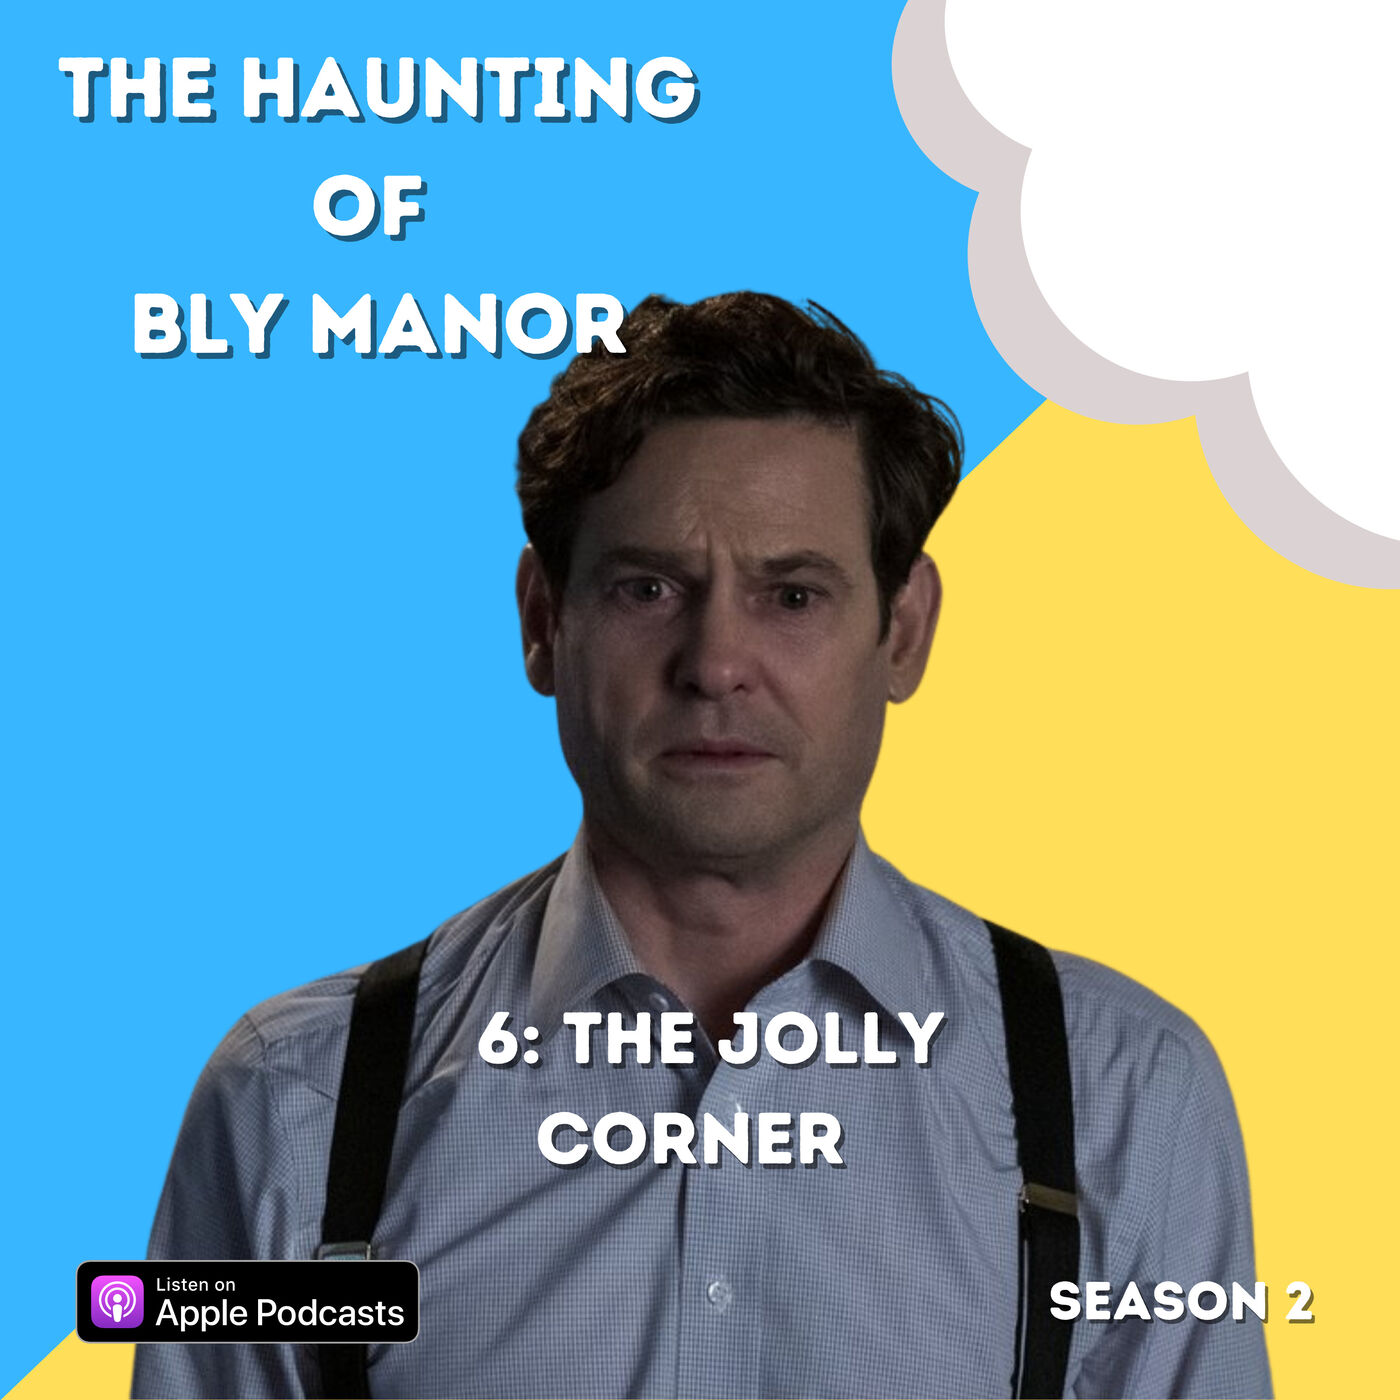 The Haunting of Bly Manor 6: The Jolly Corner